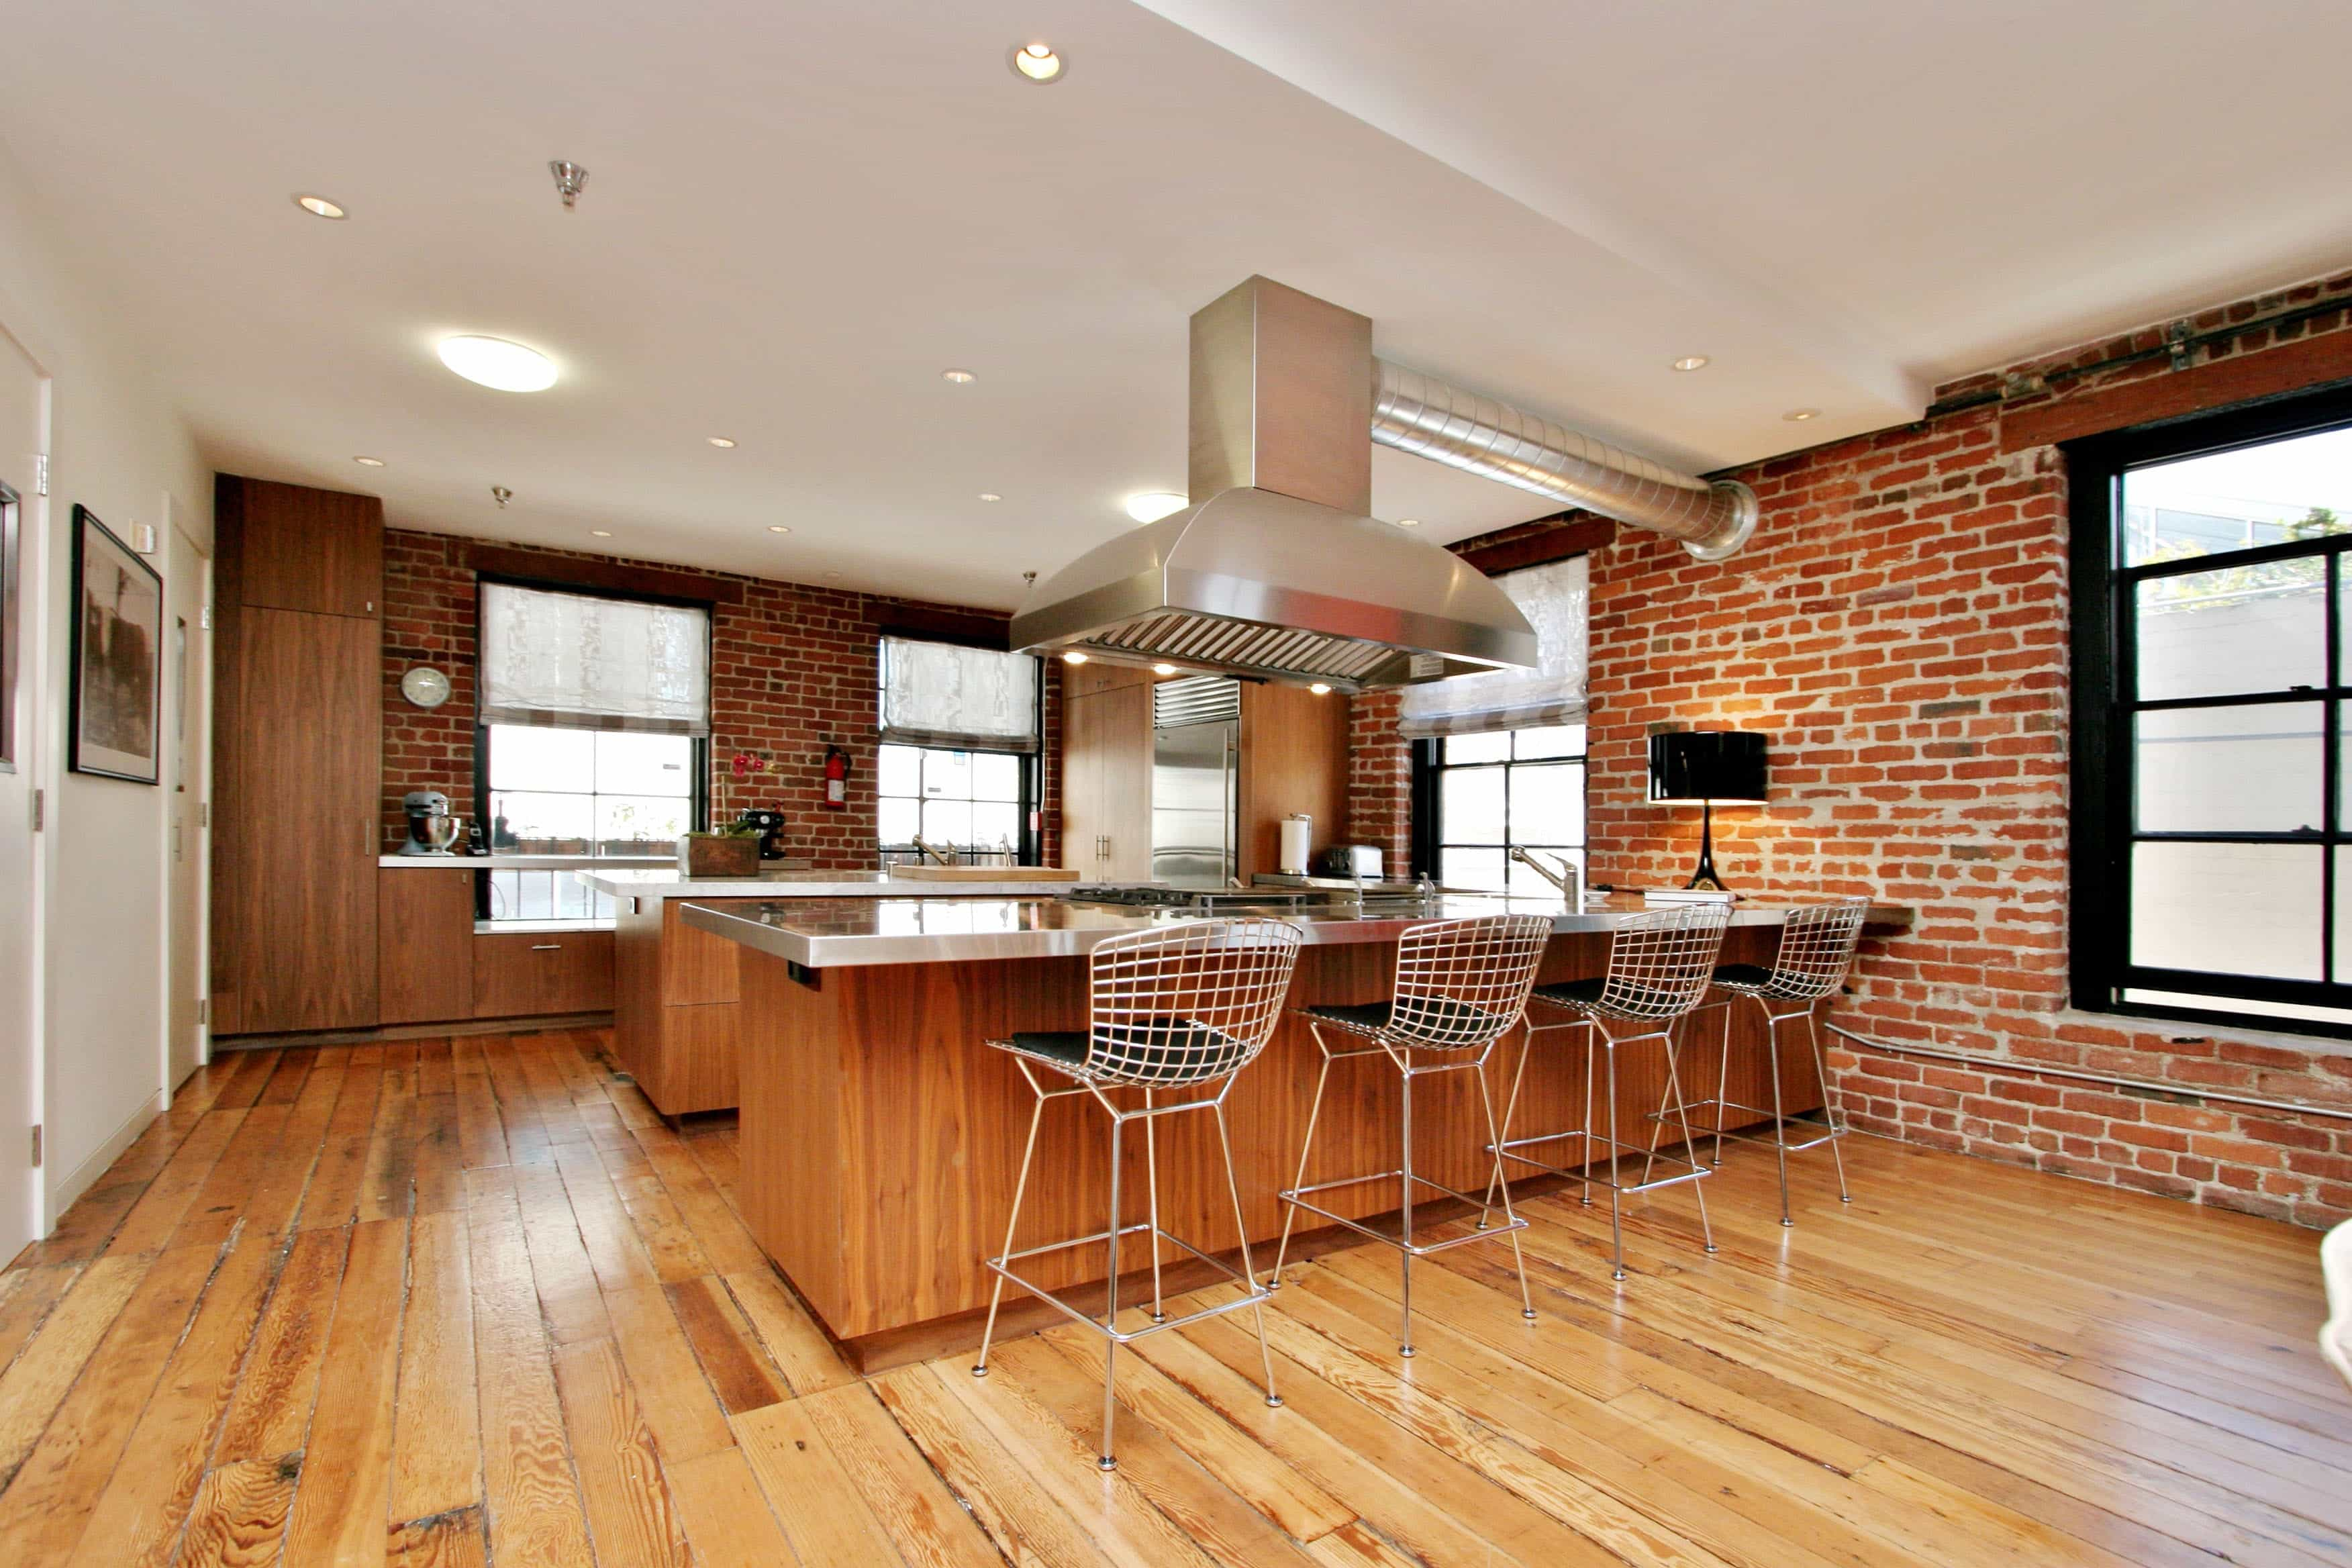 Loft Kitchen With Exposed Brick Walls And Hardwood Floors (Image 14 of 30)